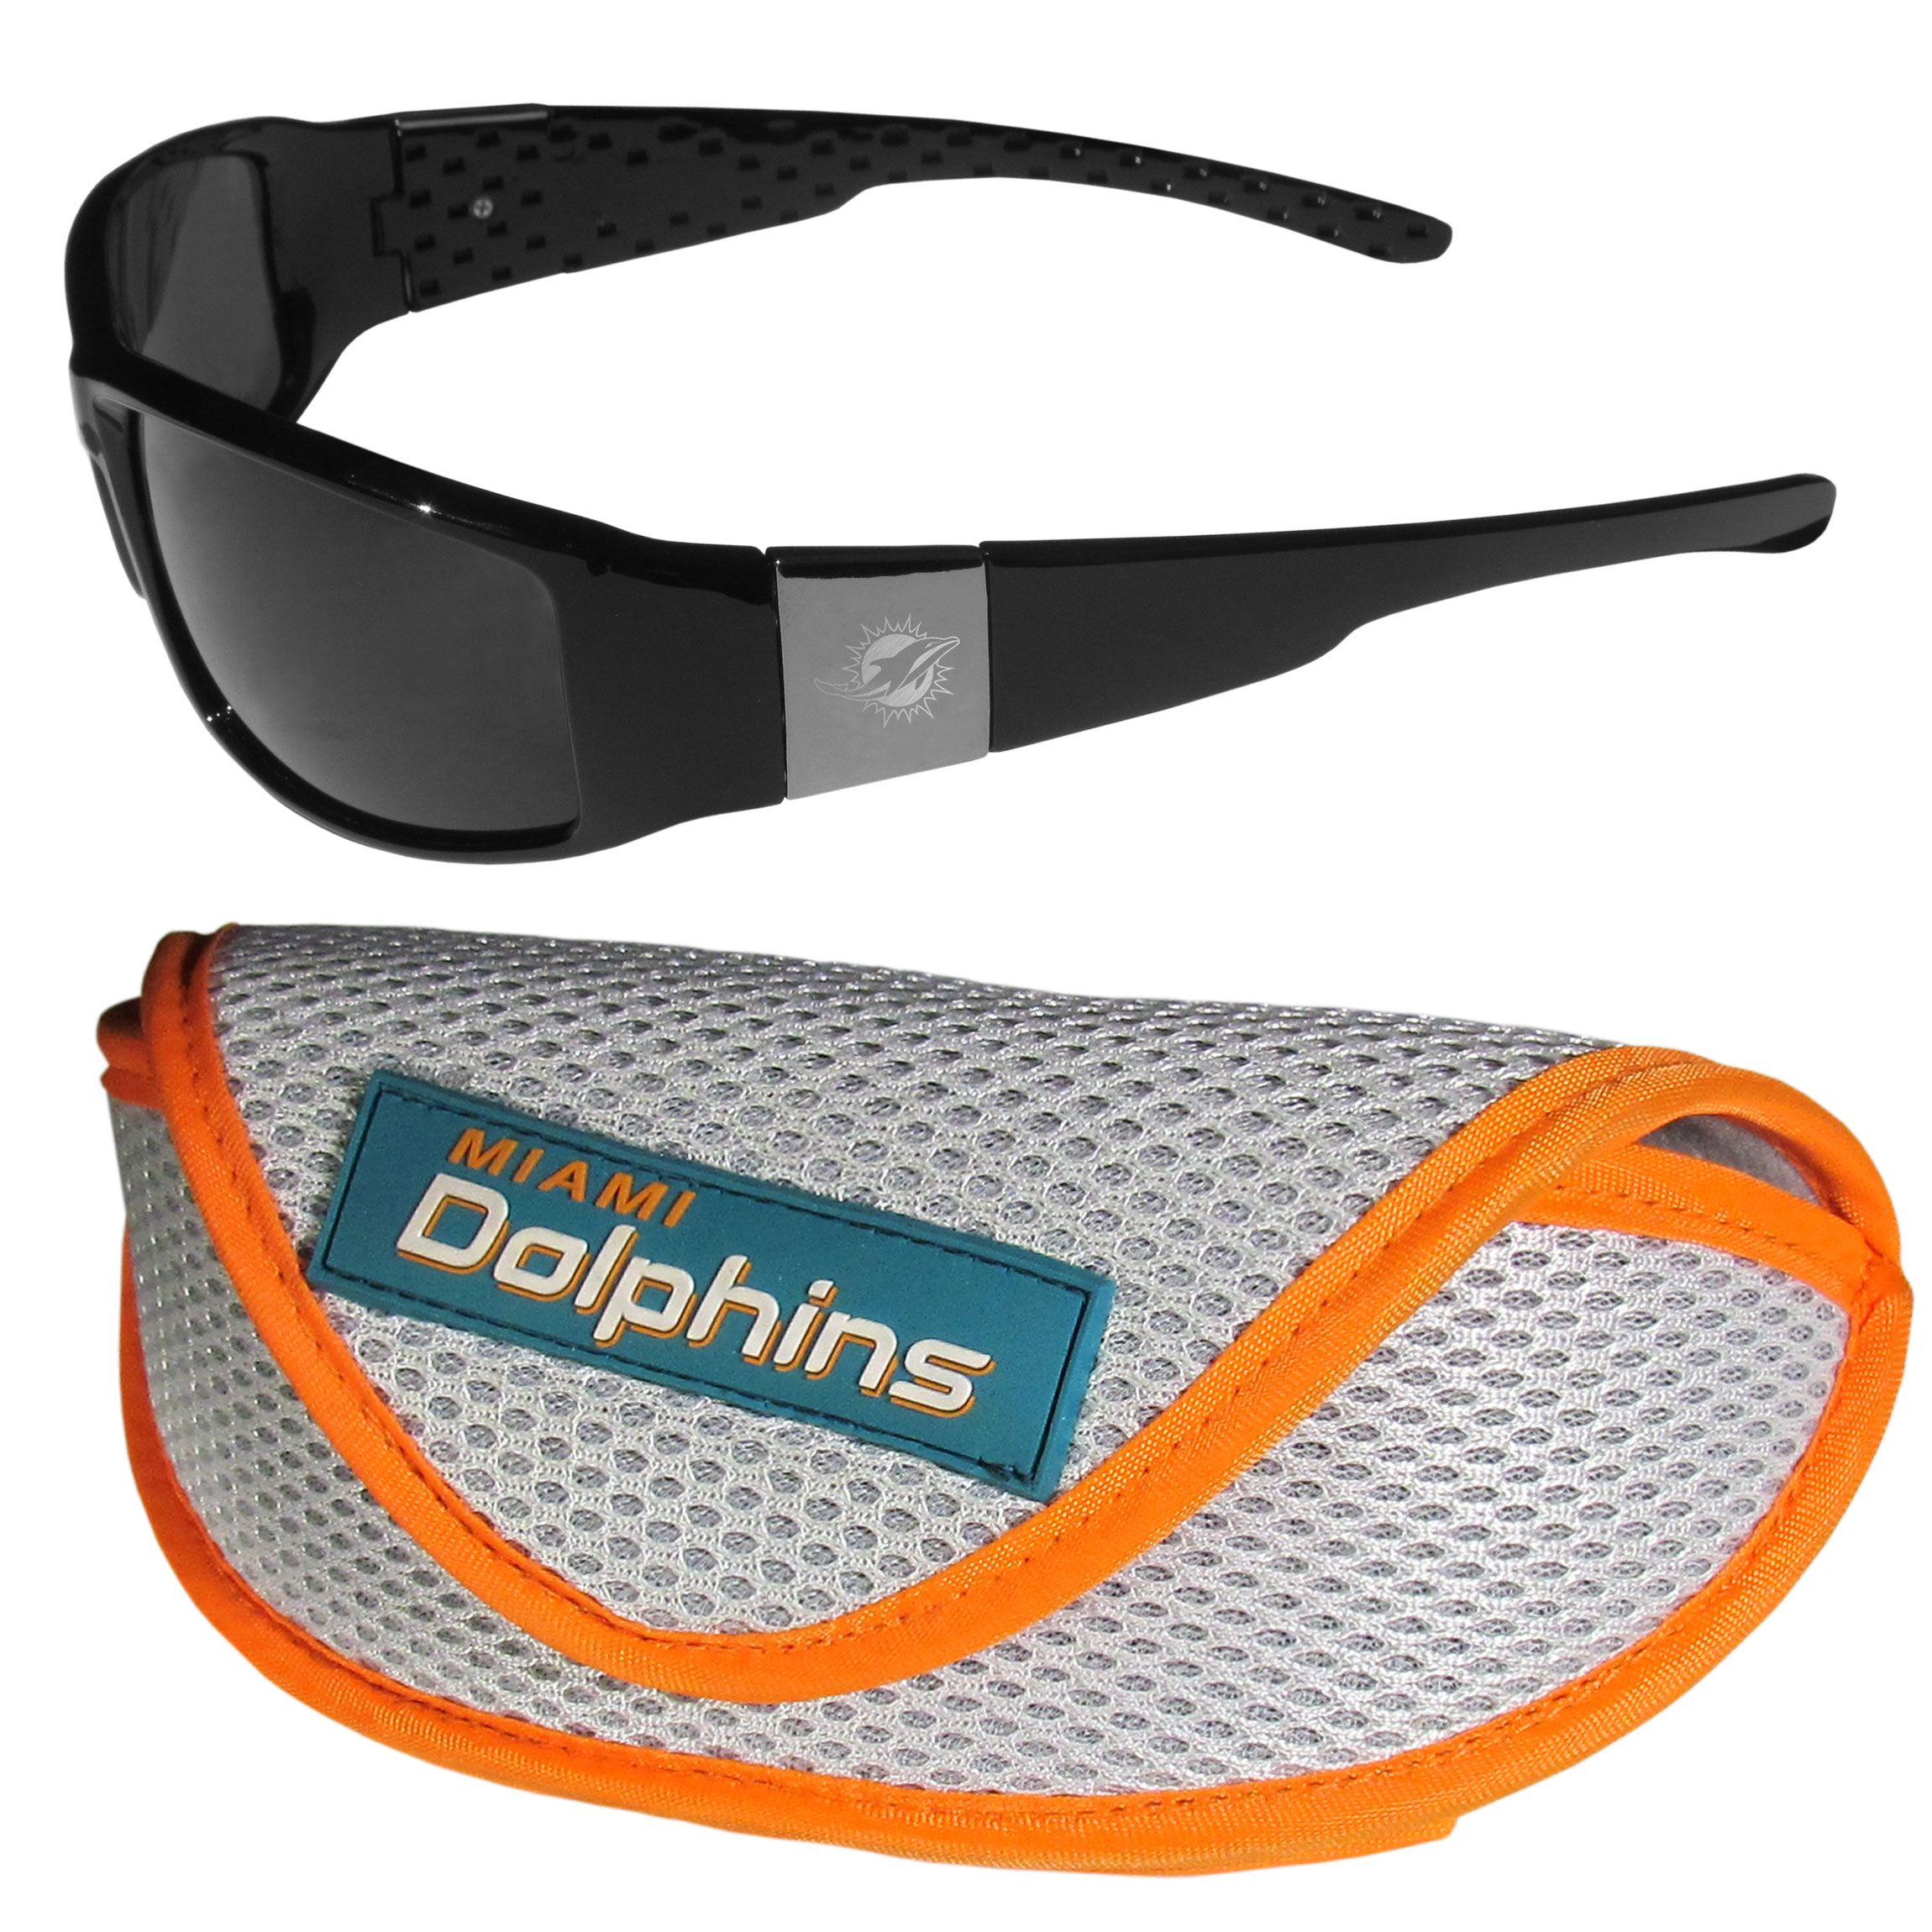 6beadae6c1db Our sleek and stylish Miami Dolphins chrome wrap sunglasses and our sporty  mesh case. The sunglasses feature etched team logos on each arm and 100%  UVA/UVB ...